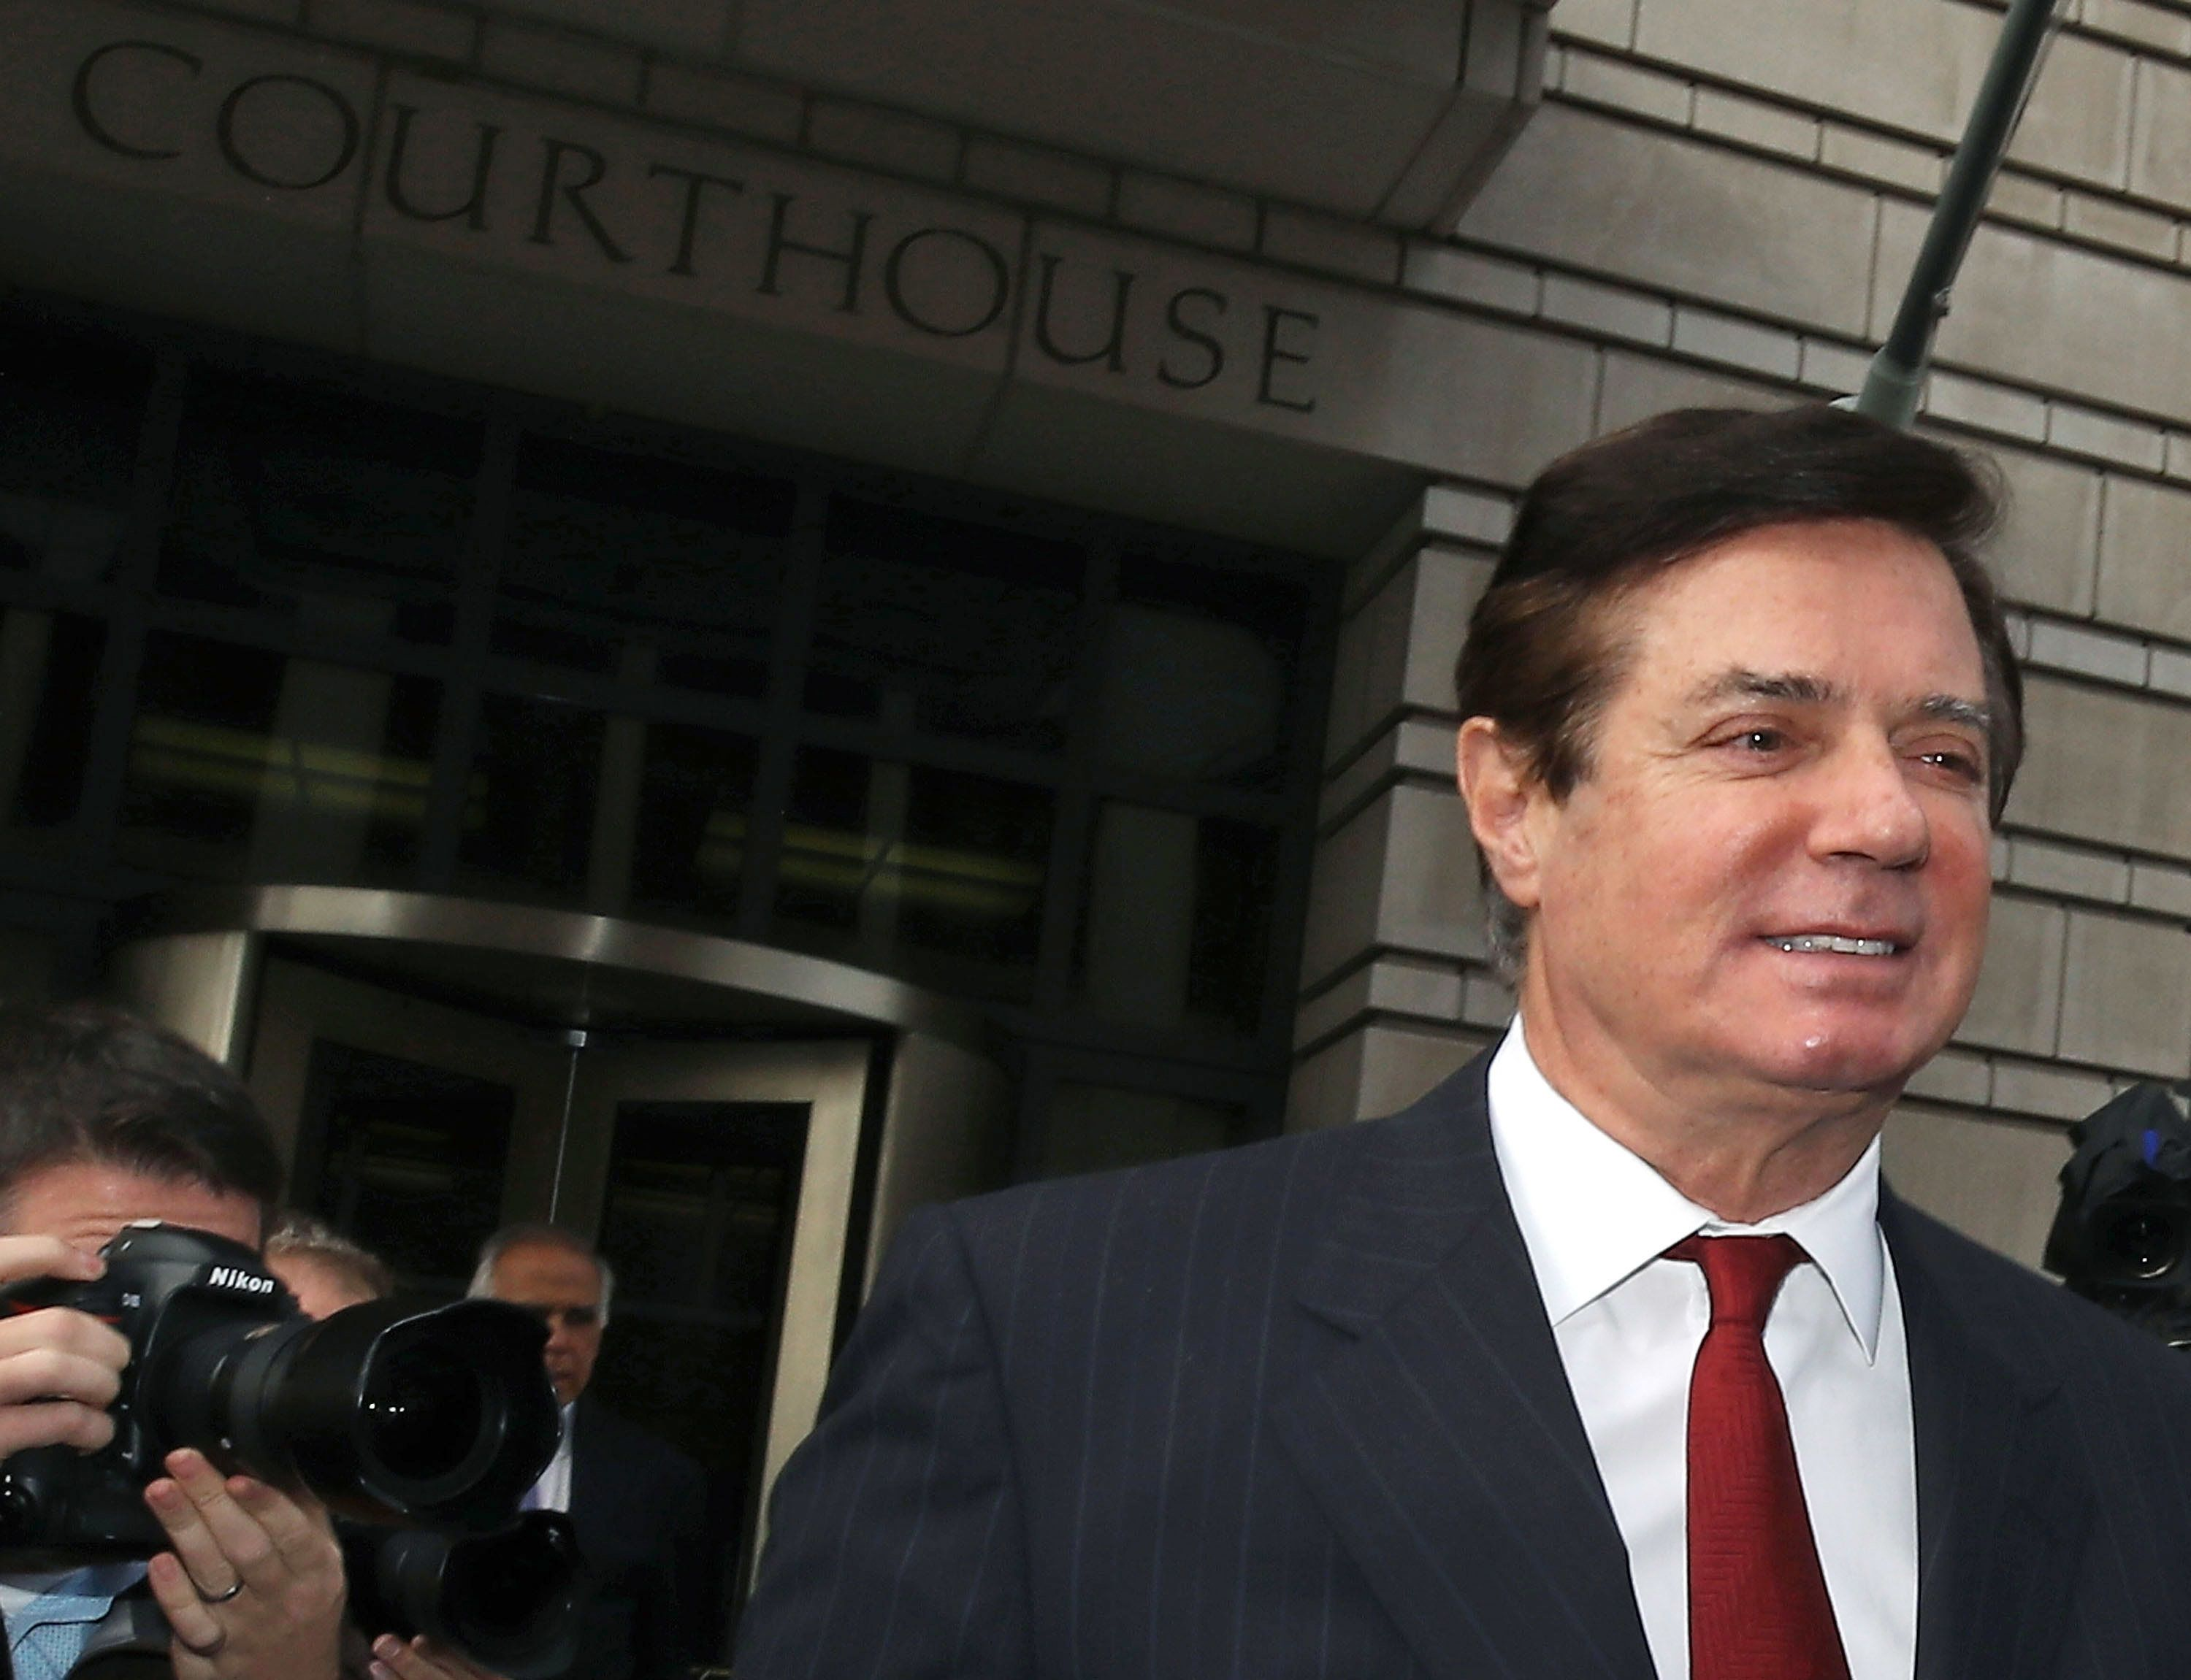 WASHINGTON, DC - NOVEMBER 06:  Former Trump campaign manager Paul Manafort leaves the Prettyman Federal Courthouse after a bail hearing November 6, 2017 in Washington, DC. Manafort and his former business partner Richard Gates both pleaded not guilty Monday to a 12-charge indictment that included money laundering and conspiracy.  (Photo by Mark Wilson/Getty Images)